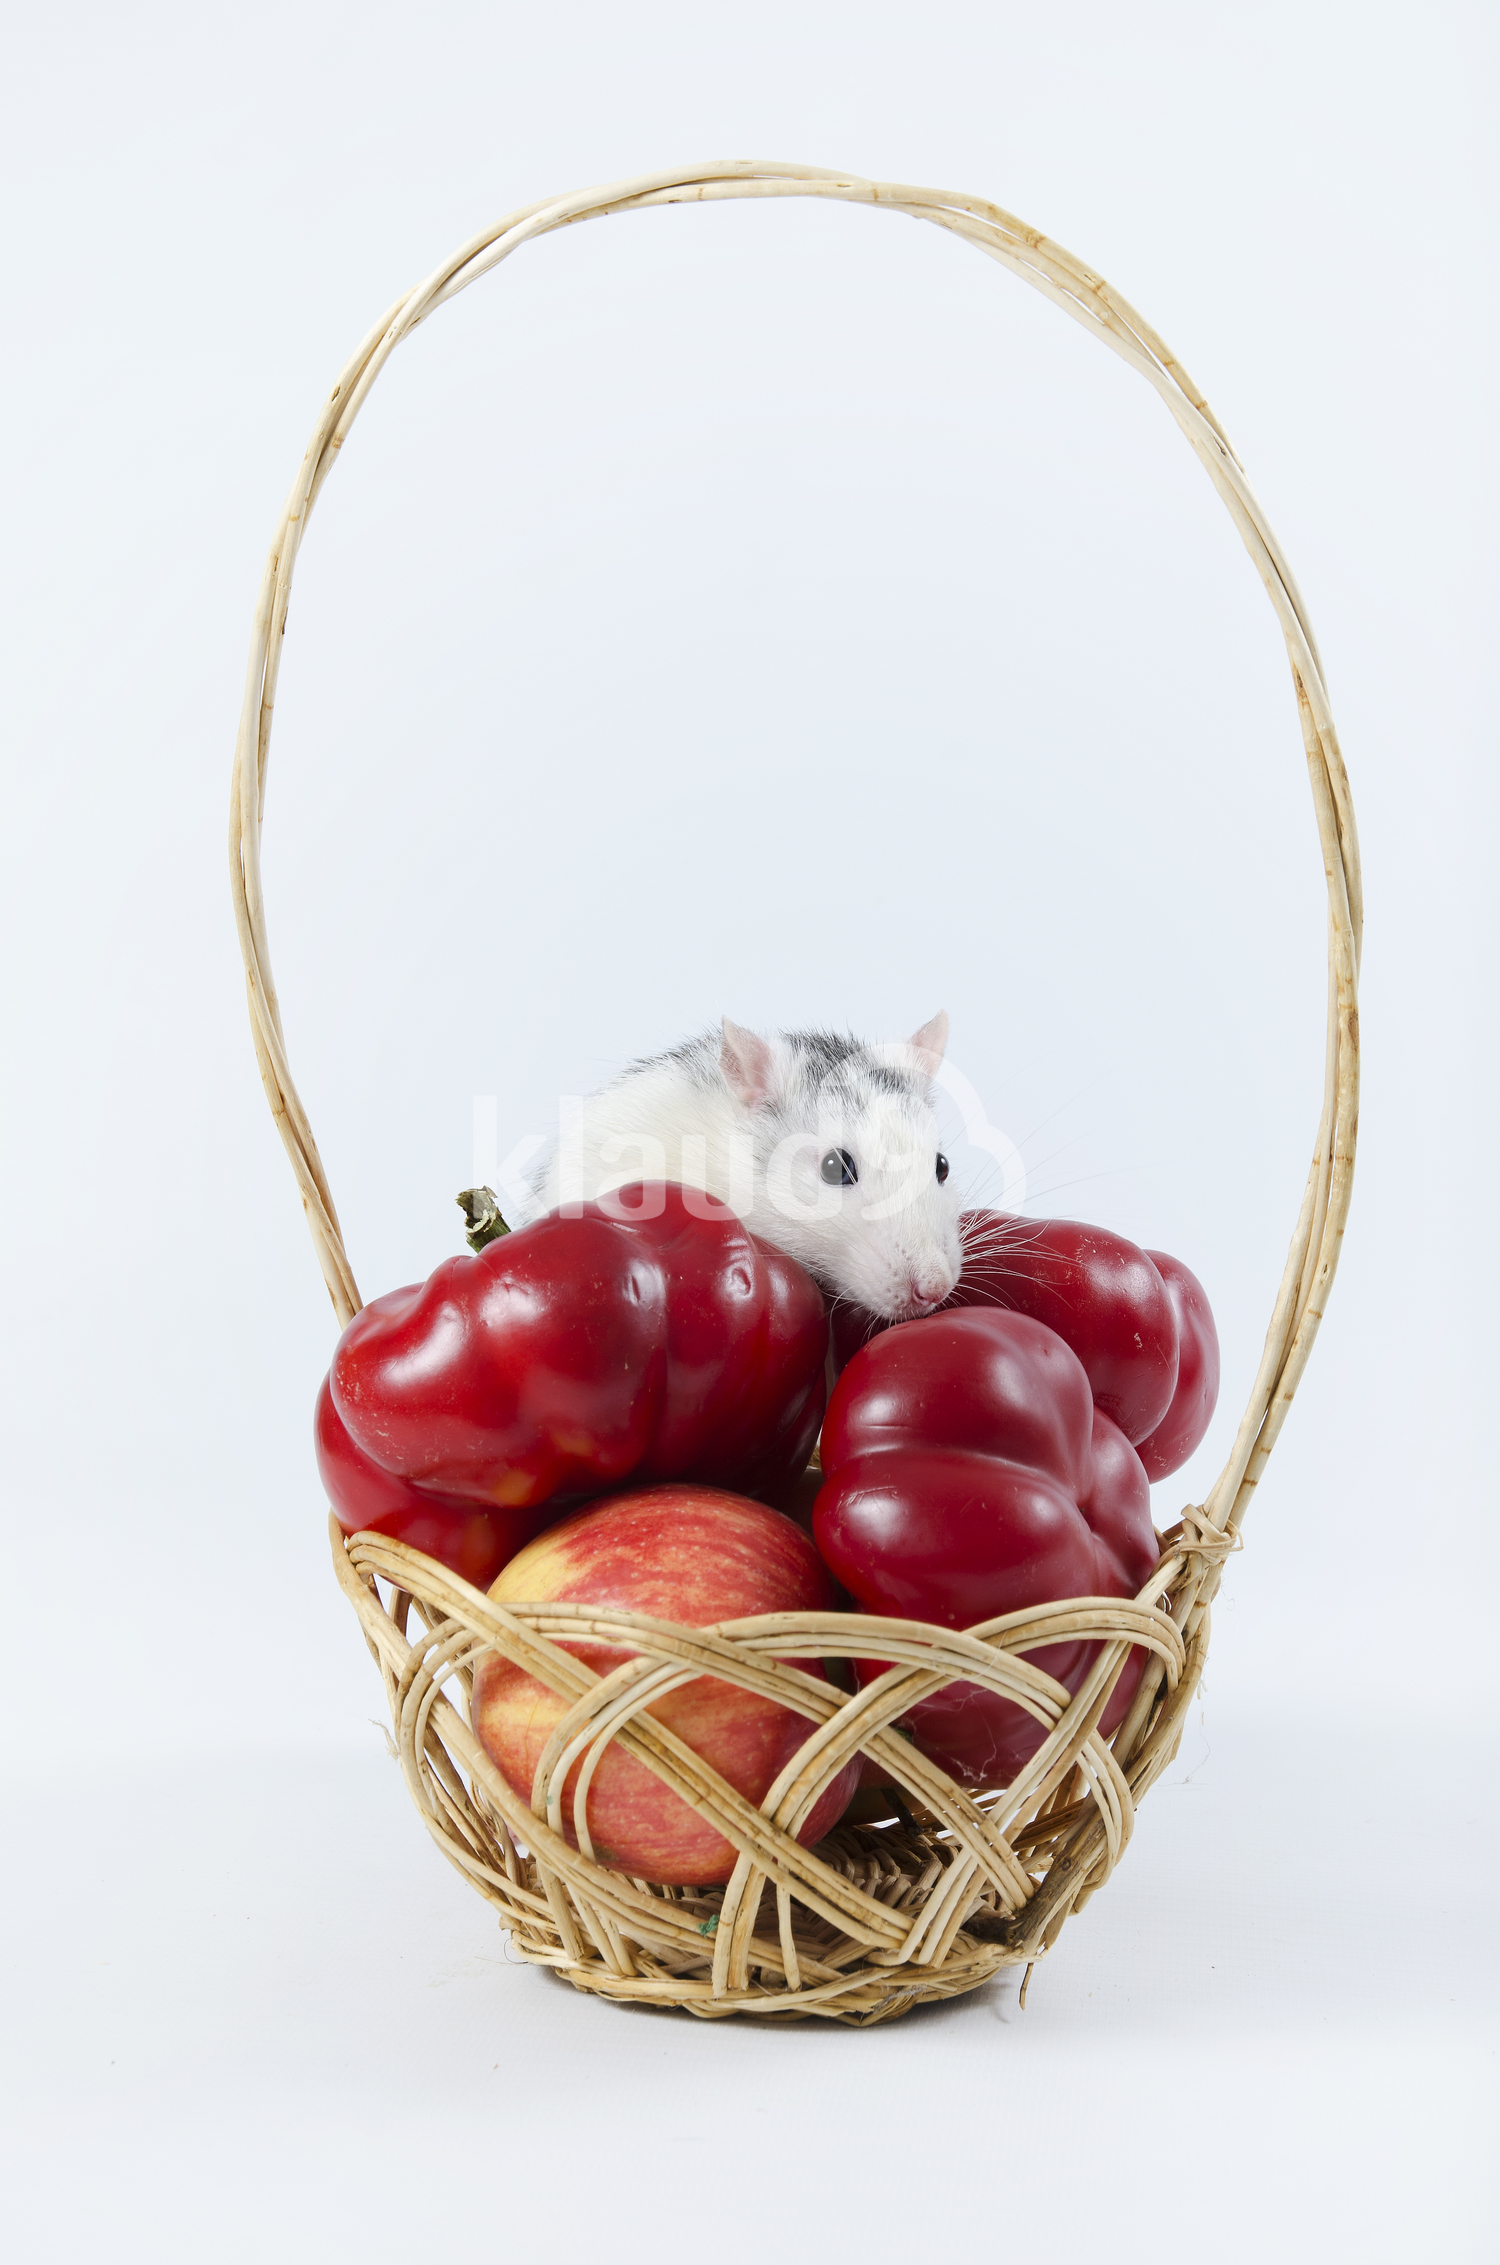 Cute Rat on Wicker basket